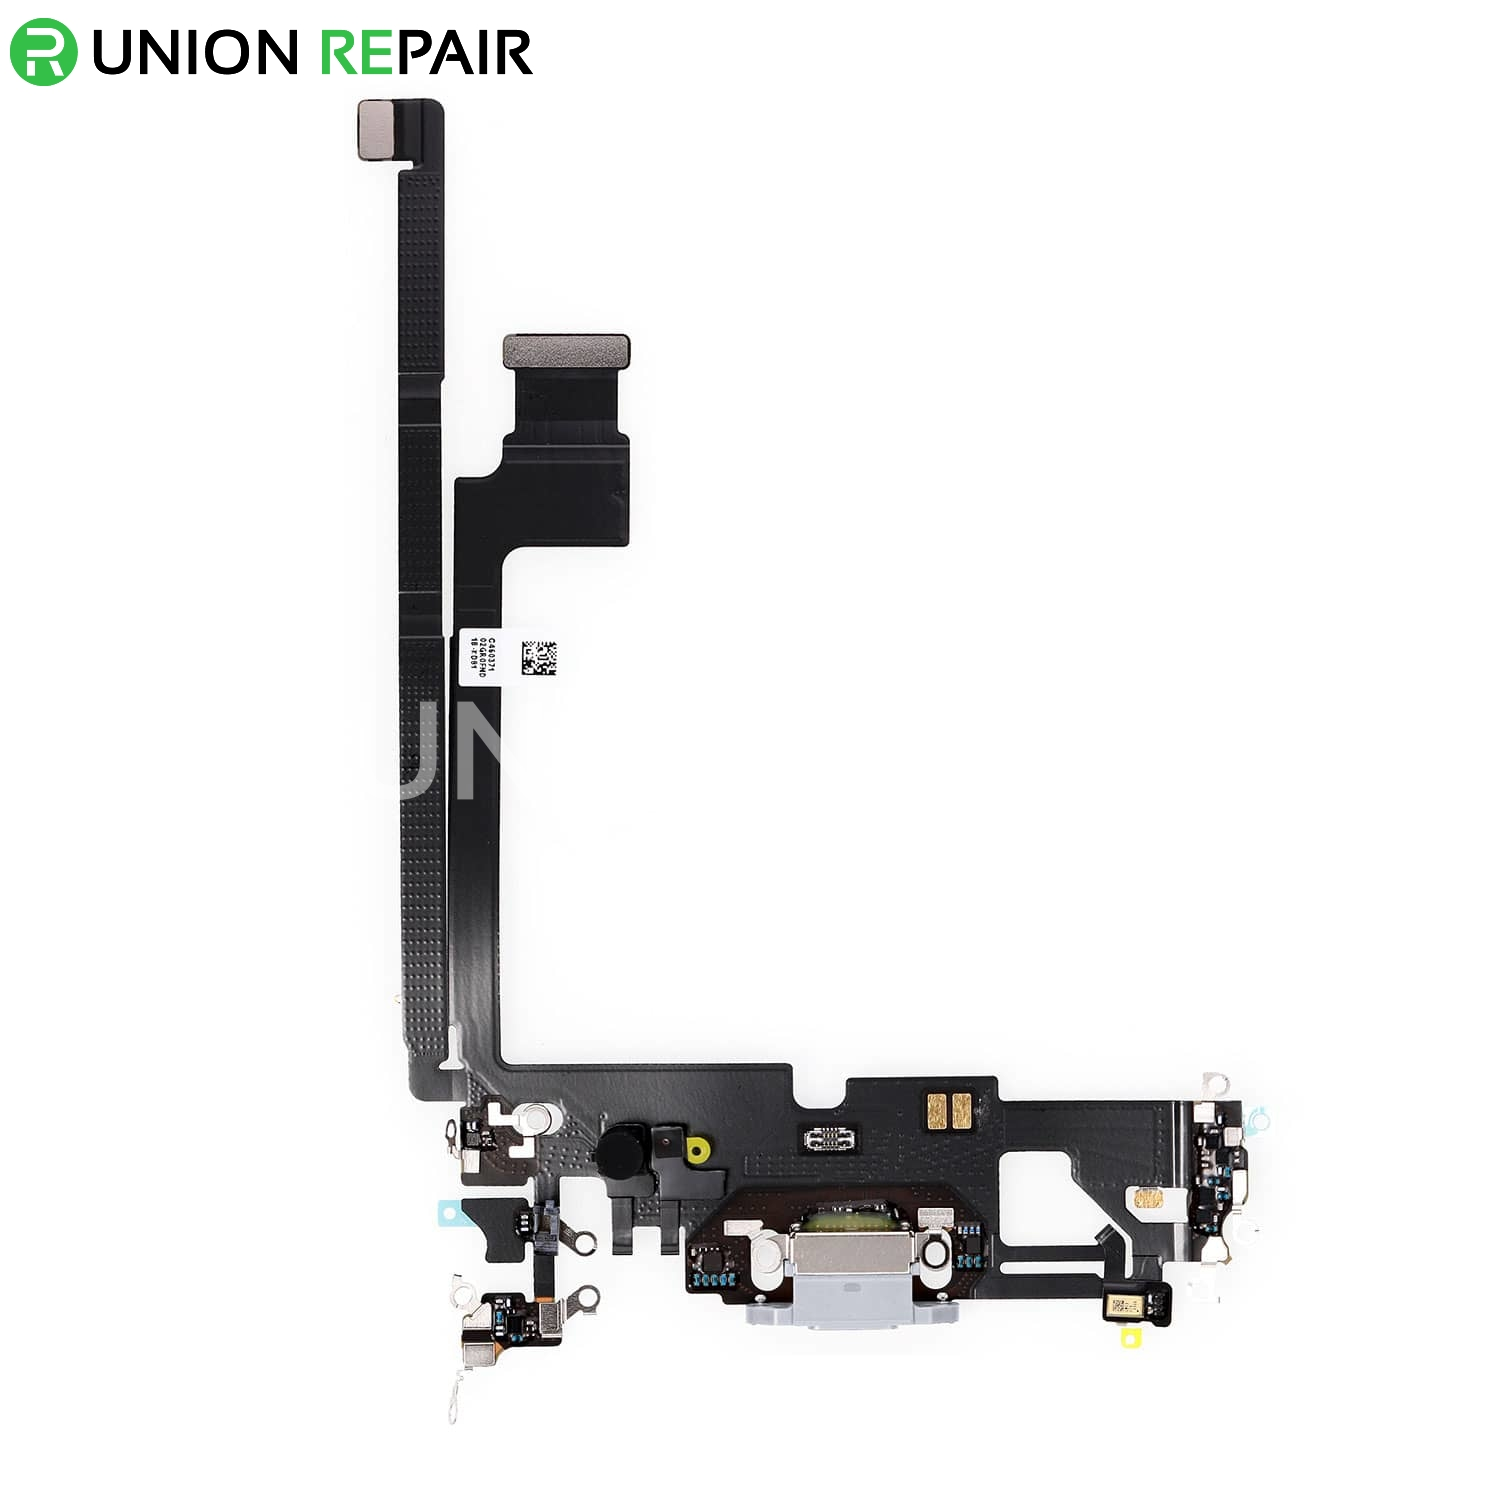 Replacement for iPhone 12 Pro Max USB Charging Flex Cable - Silver